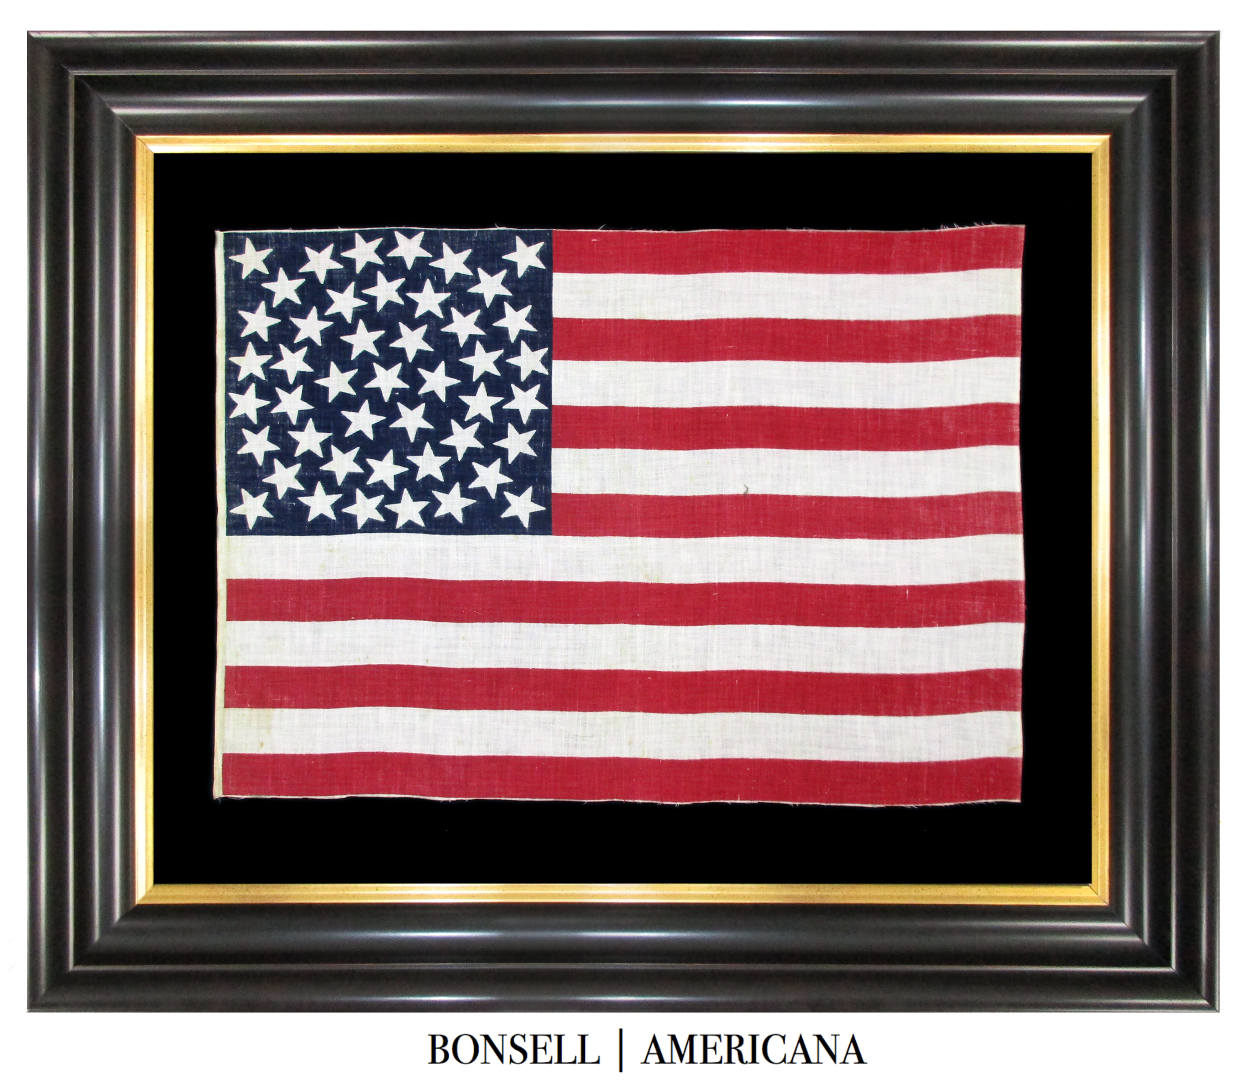 45 Star Antique American Flag with a Fantastic Medallion Pattern